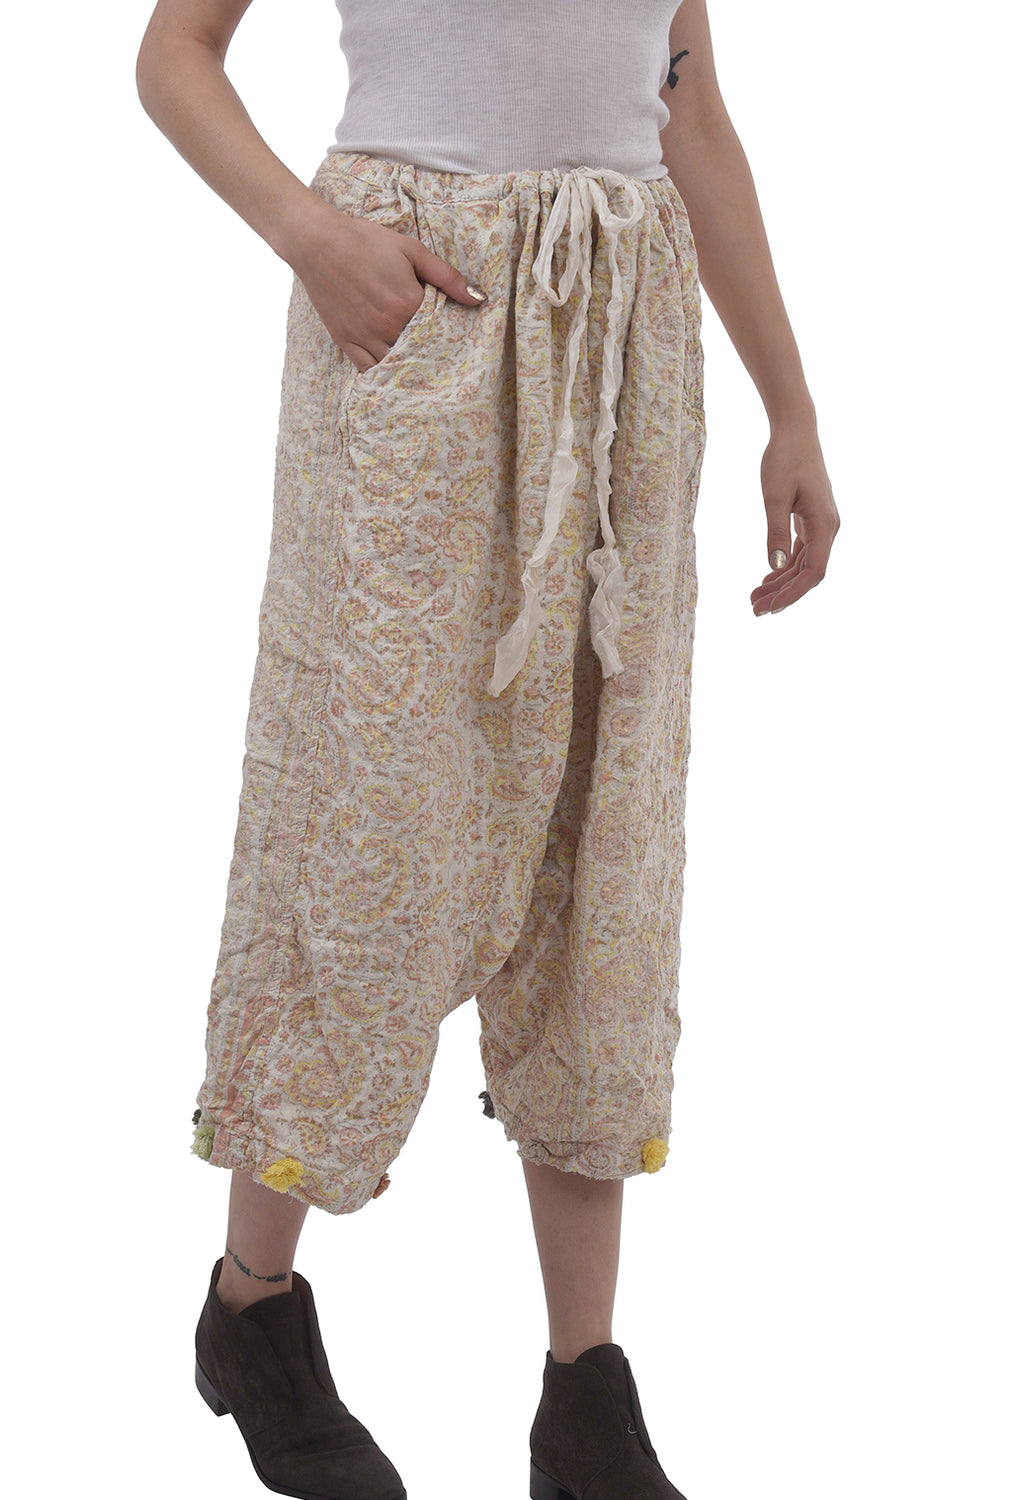 Magnolia Pearl Quilted Garcon Trousers, Cream Naranja One Size Cream